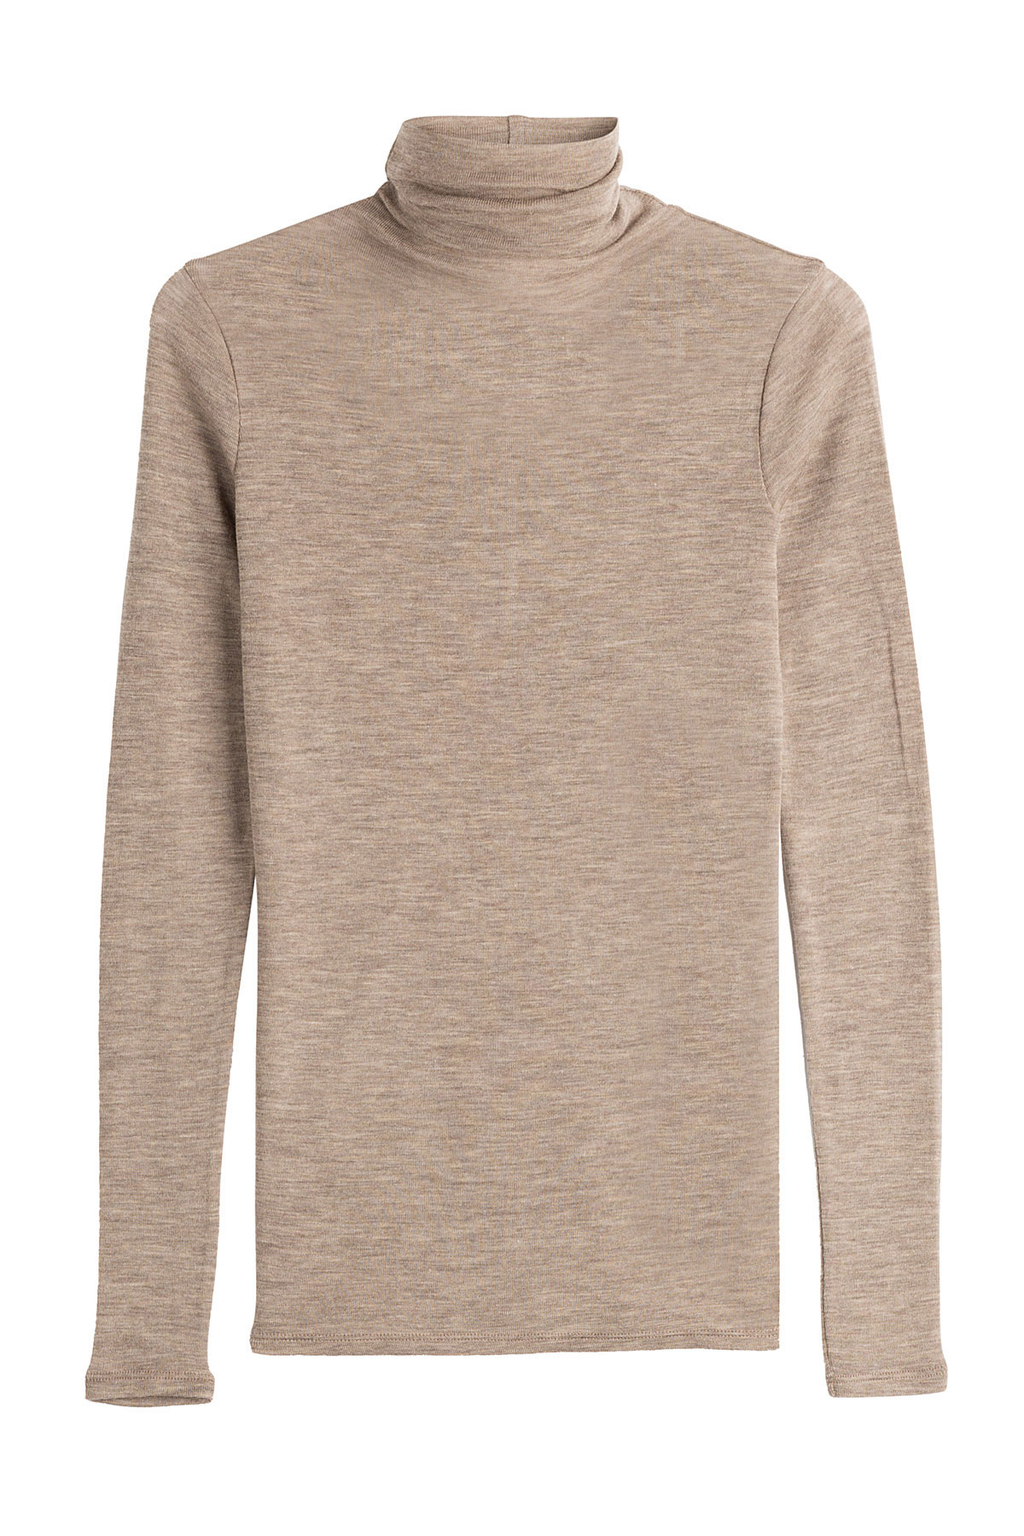 Wool Turtleneck Pullover Brown - pattern: plain; neckline: roll neck; style: standard; hip detail: fitted at hip; predominant colour: camel; occasions: casual; length: standard; fibres: wool - 100%; fit: slim fit; sleeve length: long sleeve; sleeve style: standard; texture group: knits/crochet; pattern type: knitted - fine stitch; season: a/w 2016